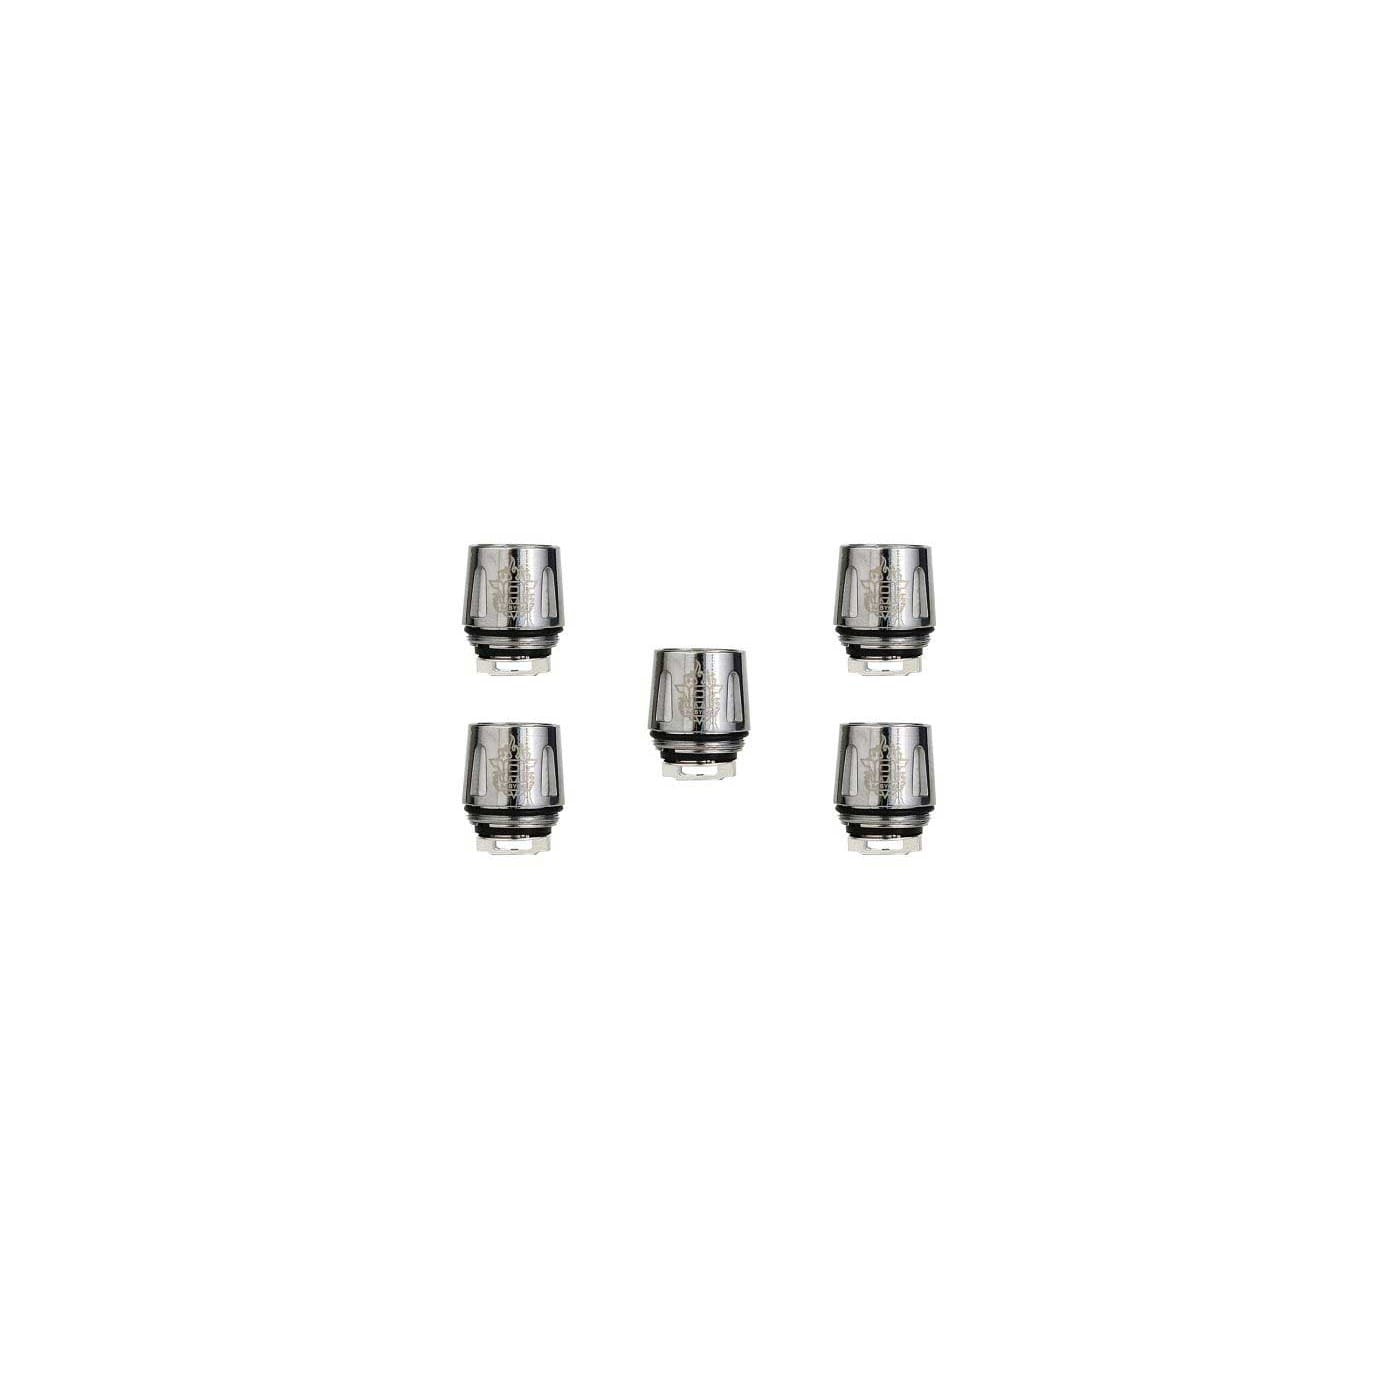 Smok TFV8 Baby Beast M2 Replacement Coil -5 Pack